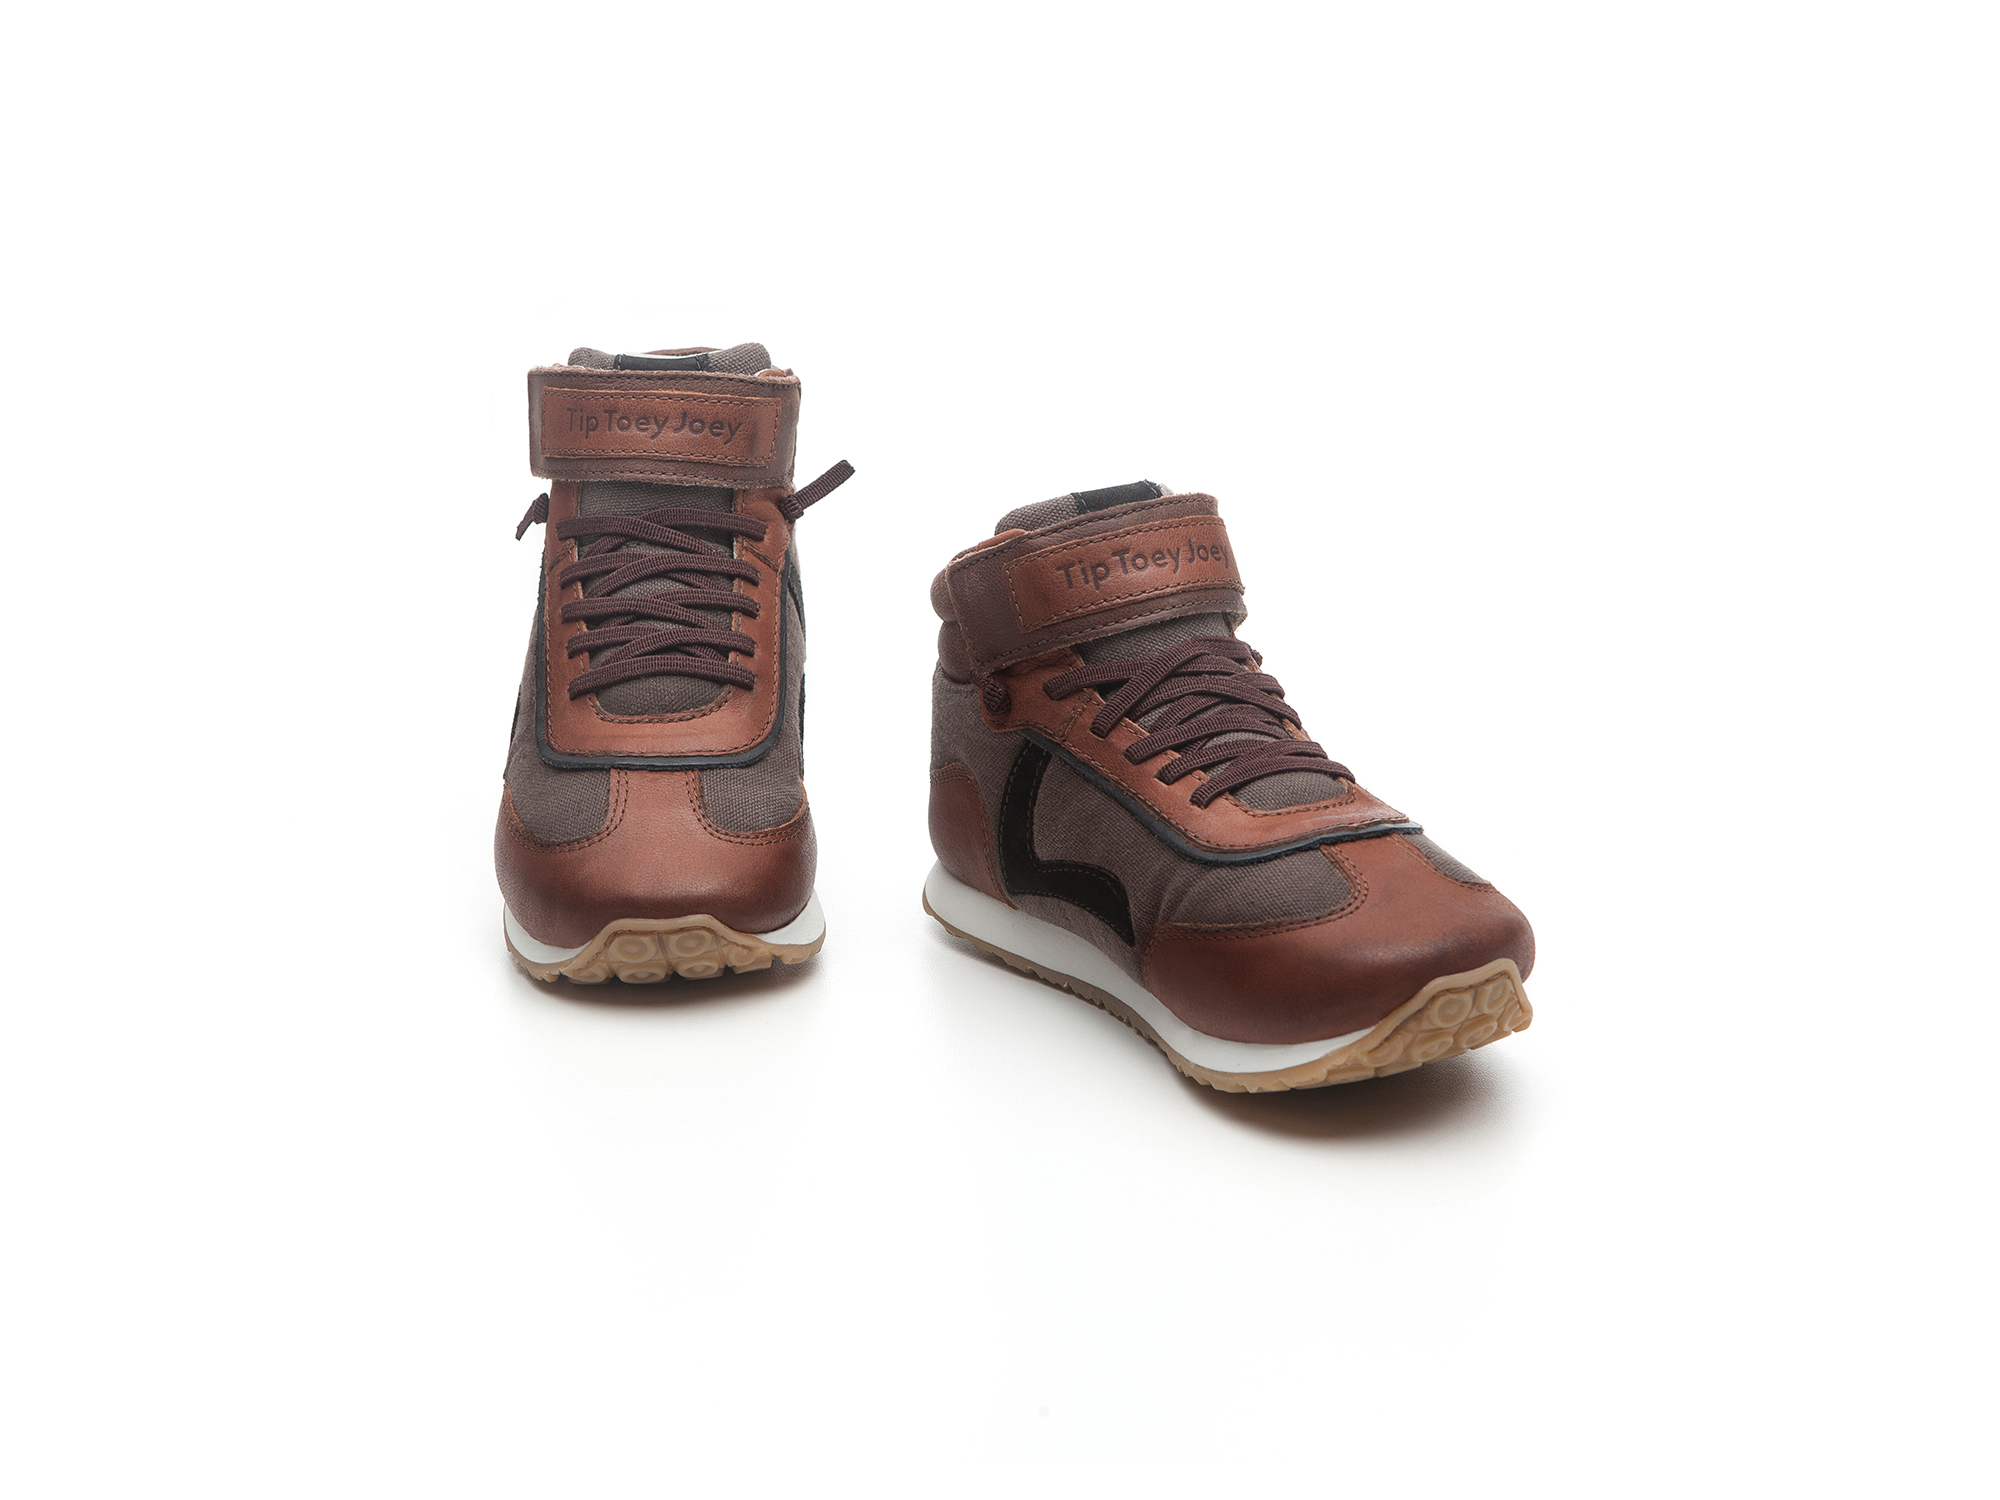 Bota T Leap D.grey Canvas/ Burning Wood/ O.brown Toddler 2 à 4 anos - 1